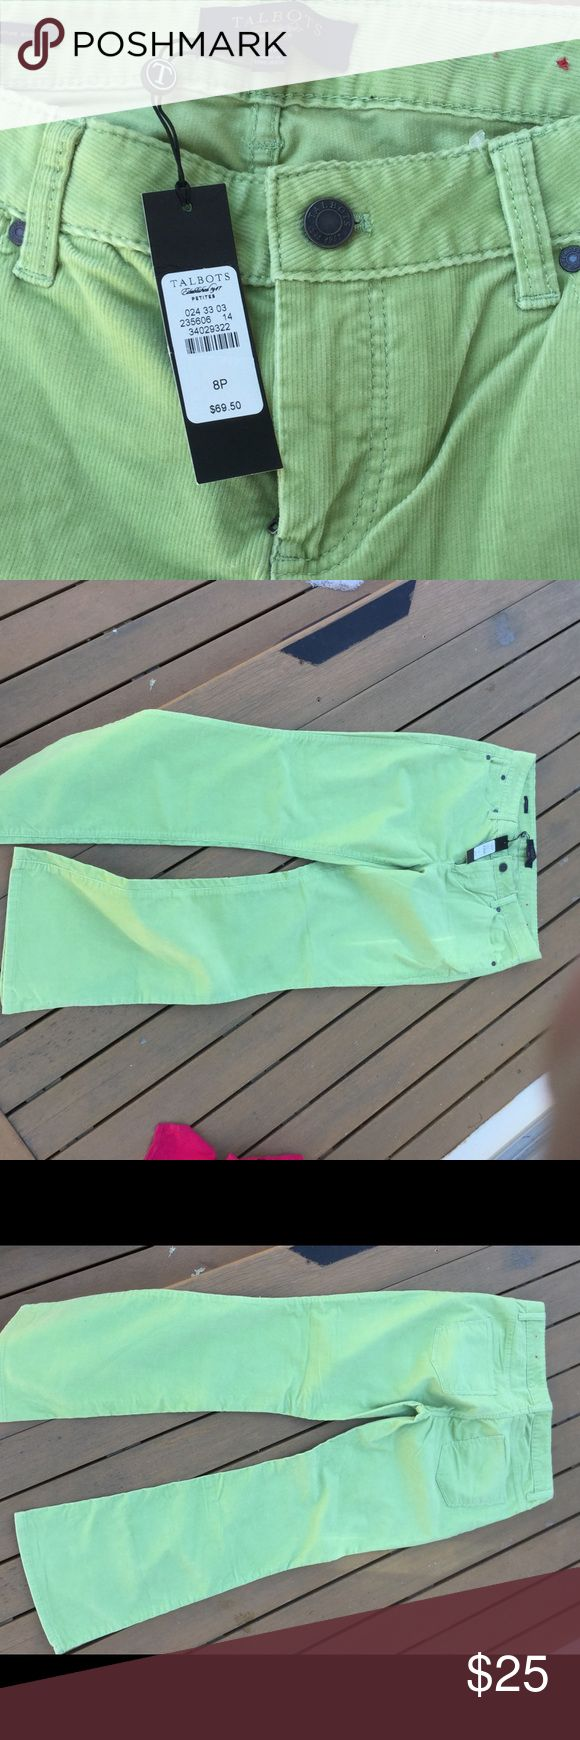 NWT 8p Talbots lime green corduroy pants New with tags's Talbots size 8 petite limegreen corduroy pants! Talbots Pants Boot Cut & Flare